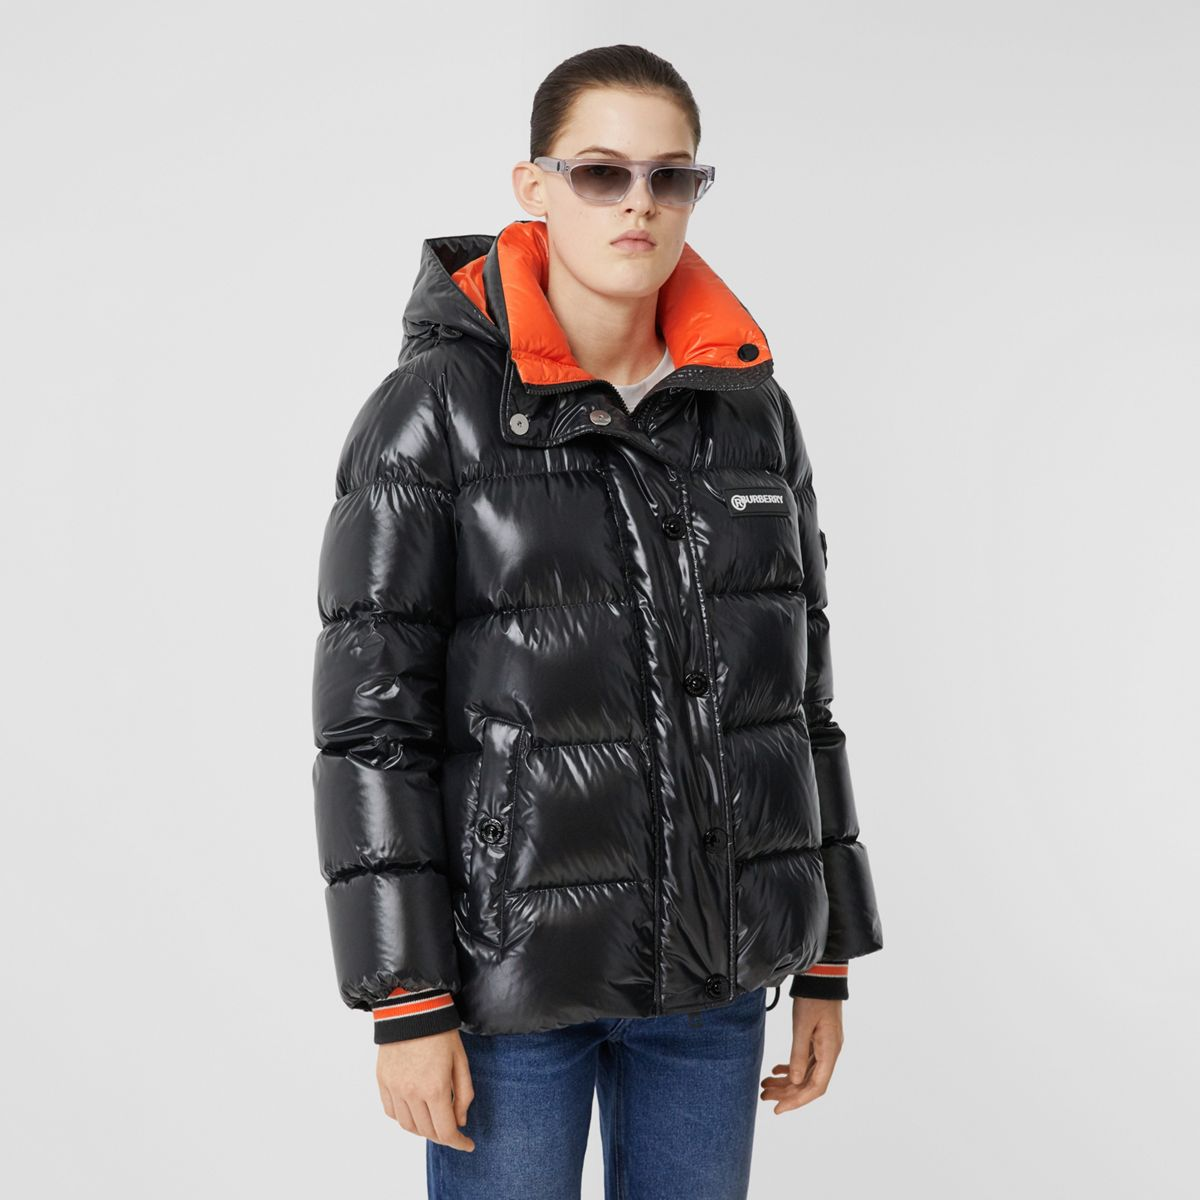 Burberry Burberry Panelled Nylon Puffer Jacket with